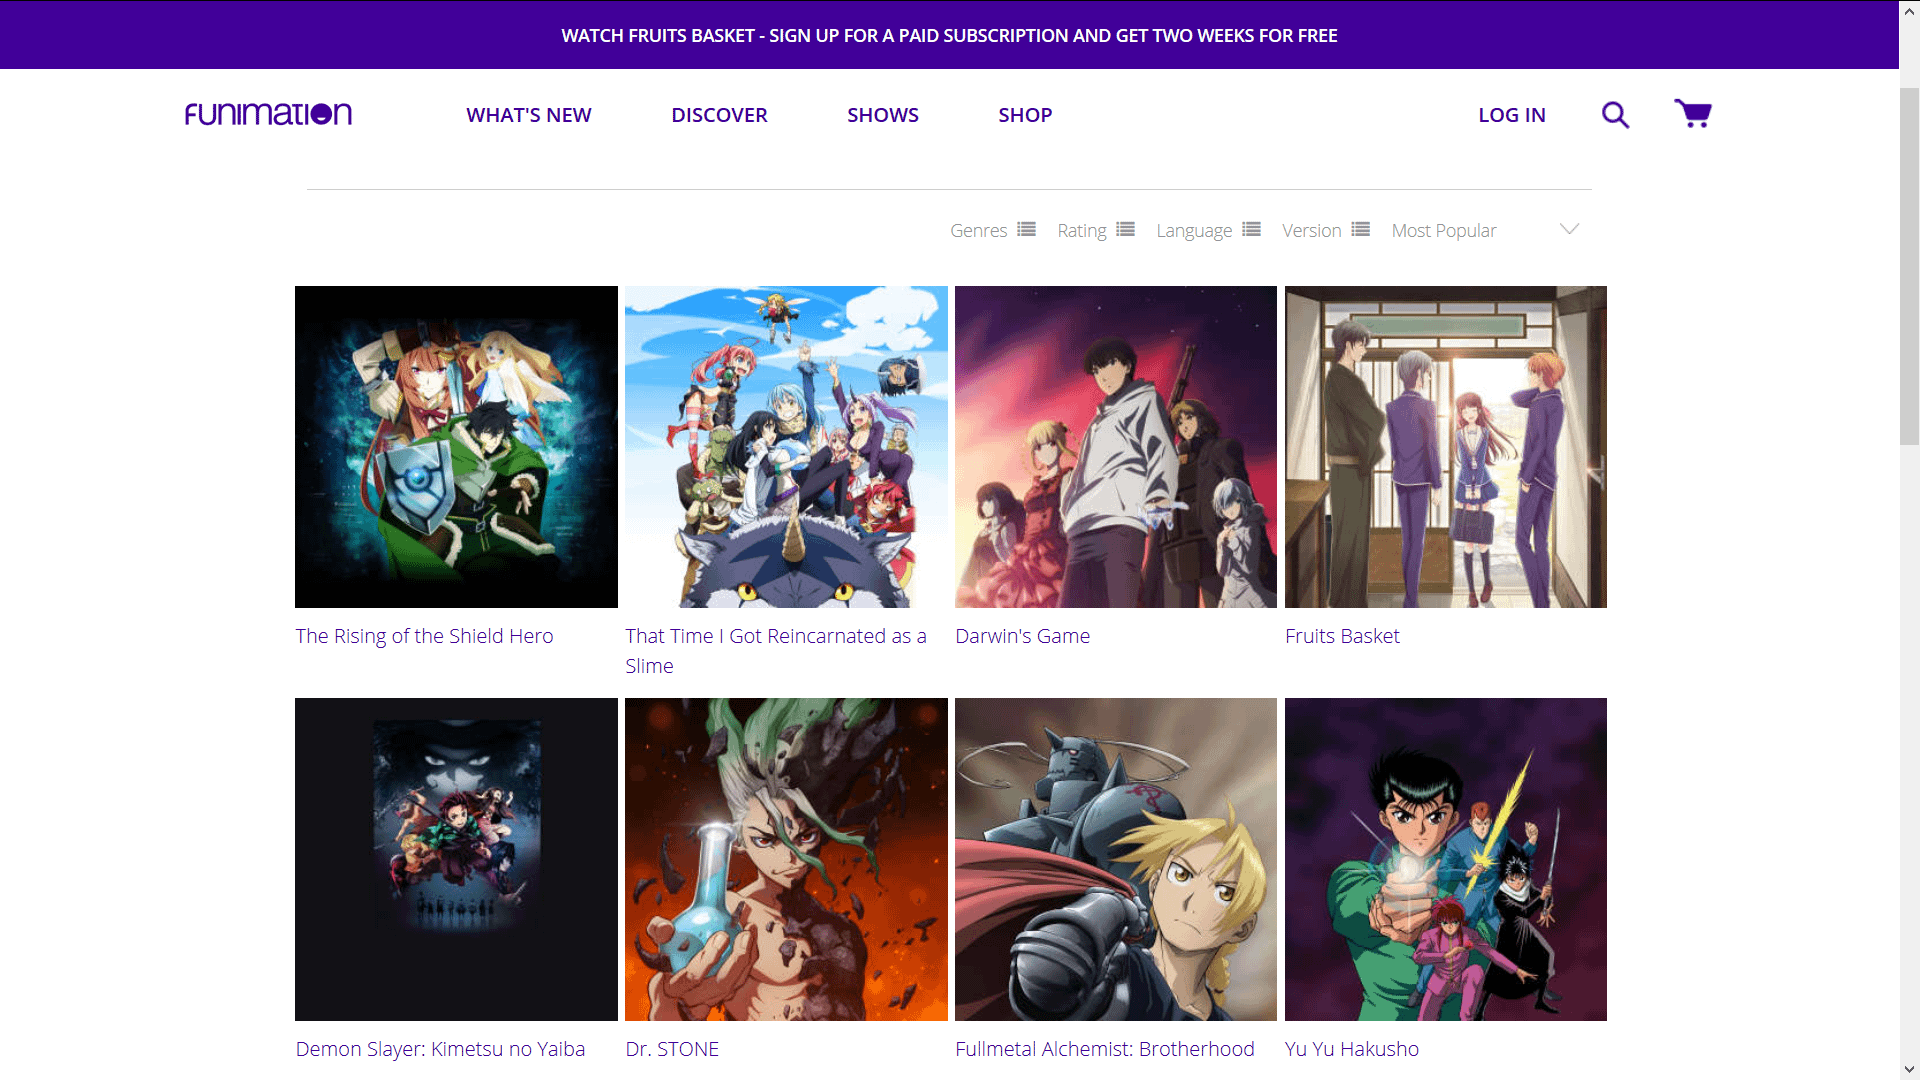 Shows on Funimation